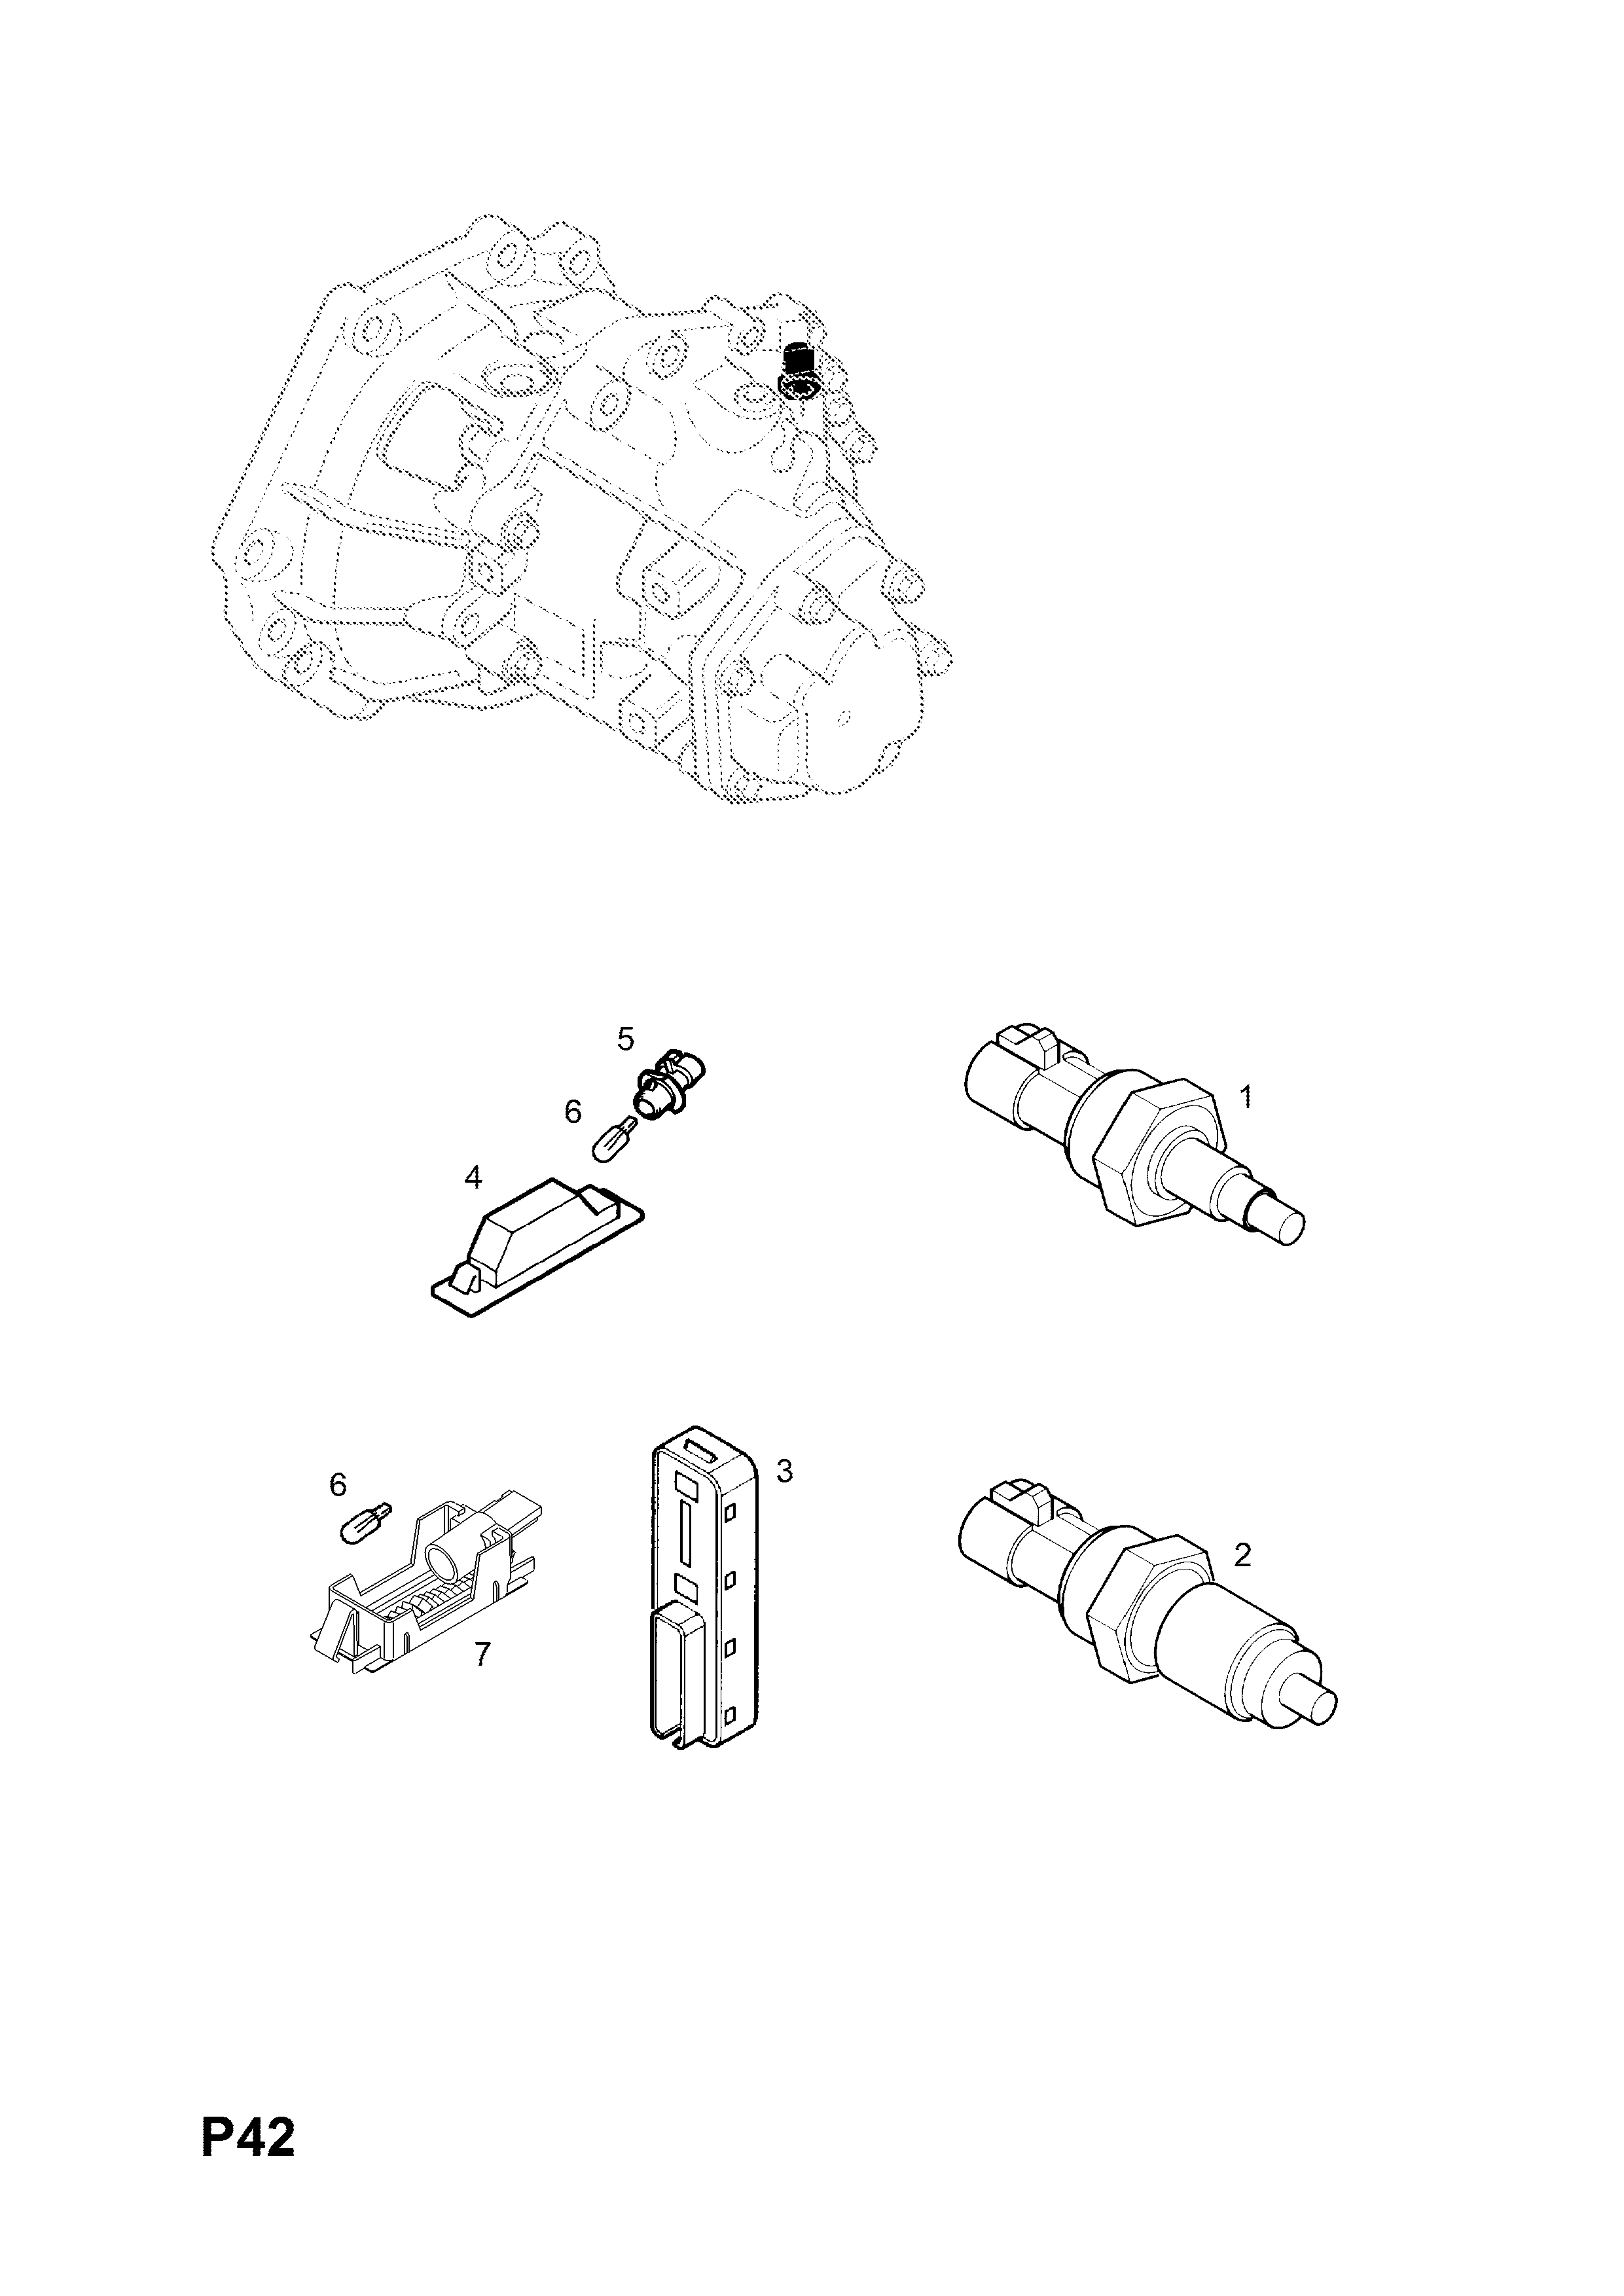 Vectra C W0l0zcf6941052682 P Electrical 254hatchsaloon F68 I Would Like To Know How Get A Diagram List Of Parts